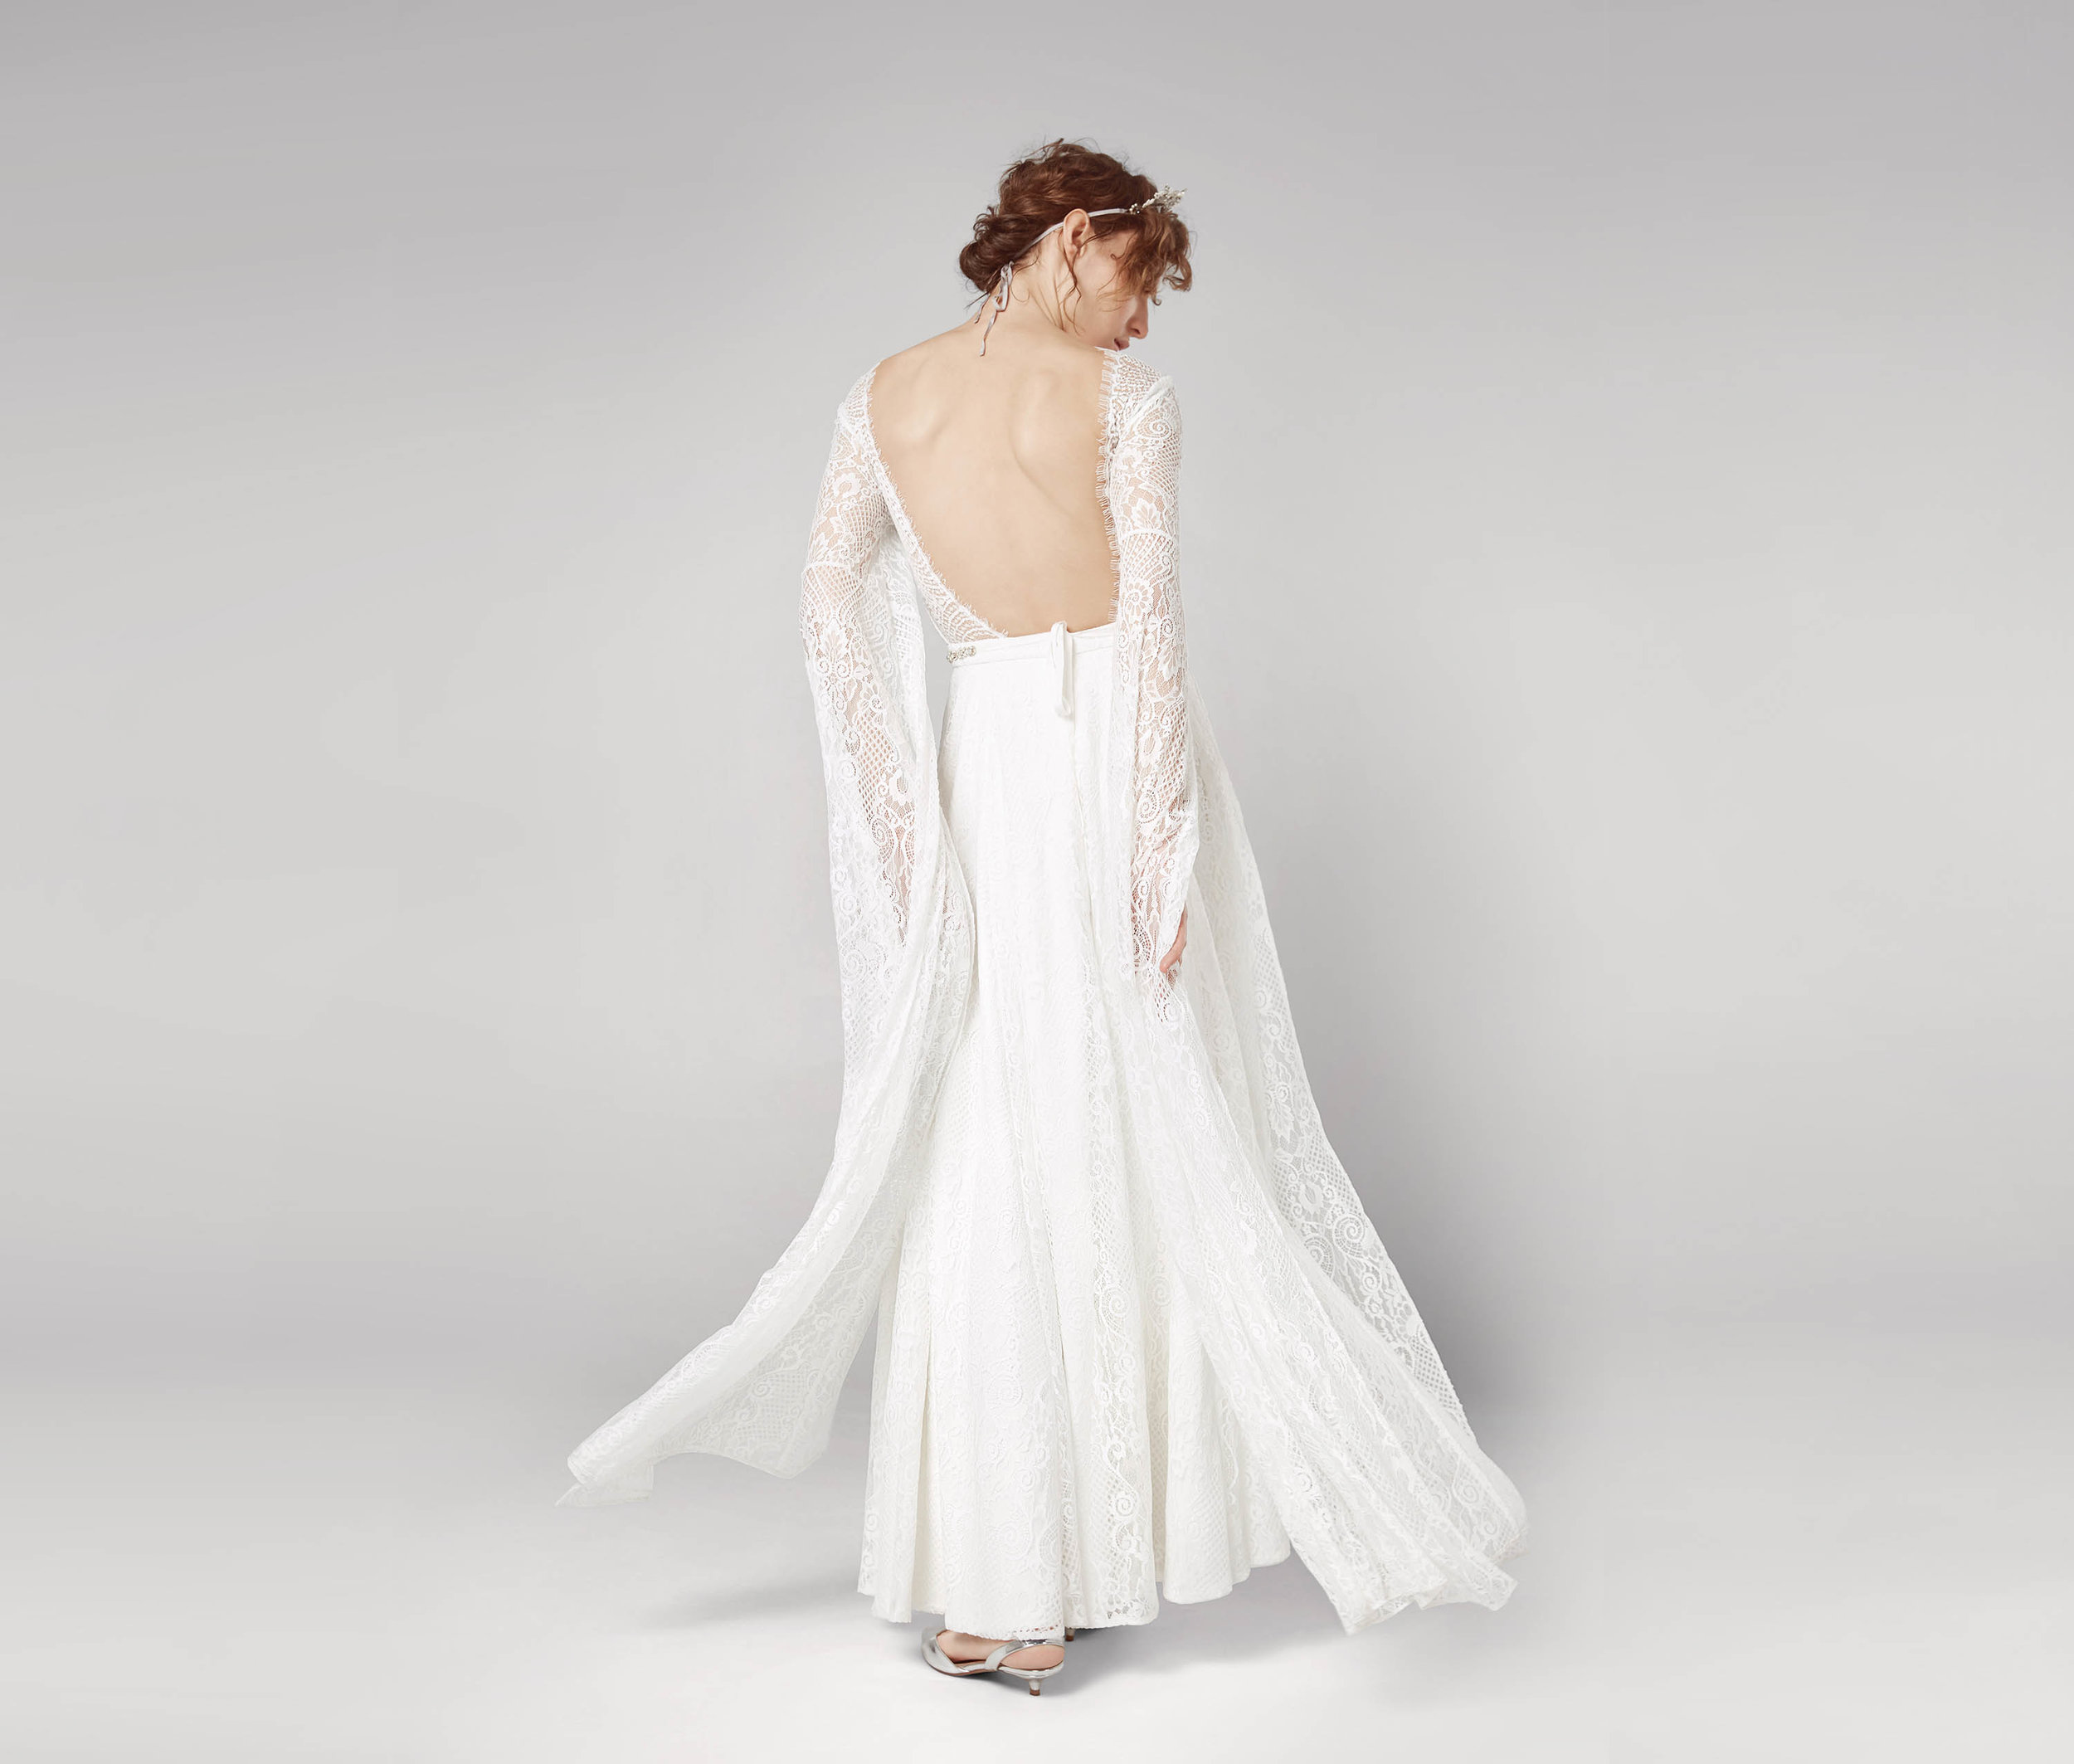 FAME & PARTNERS - The Joni Gown